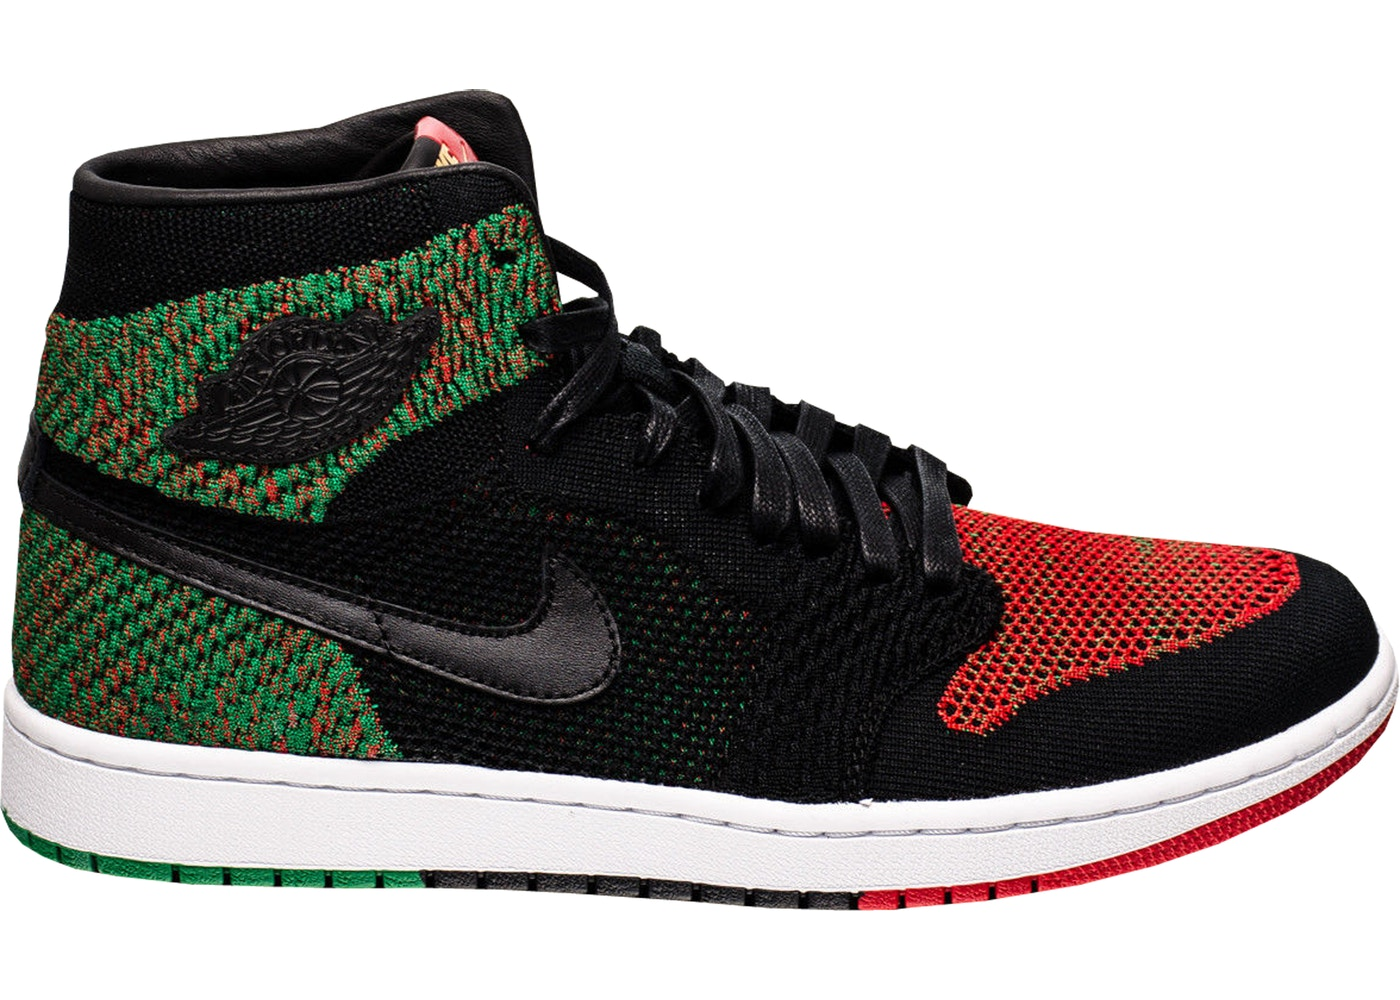 d9bc29f5935572 Jordan 1 Retro High Flyknit Black History Month (2018) - AA2426-026